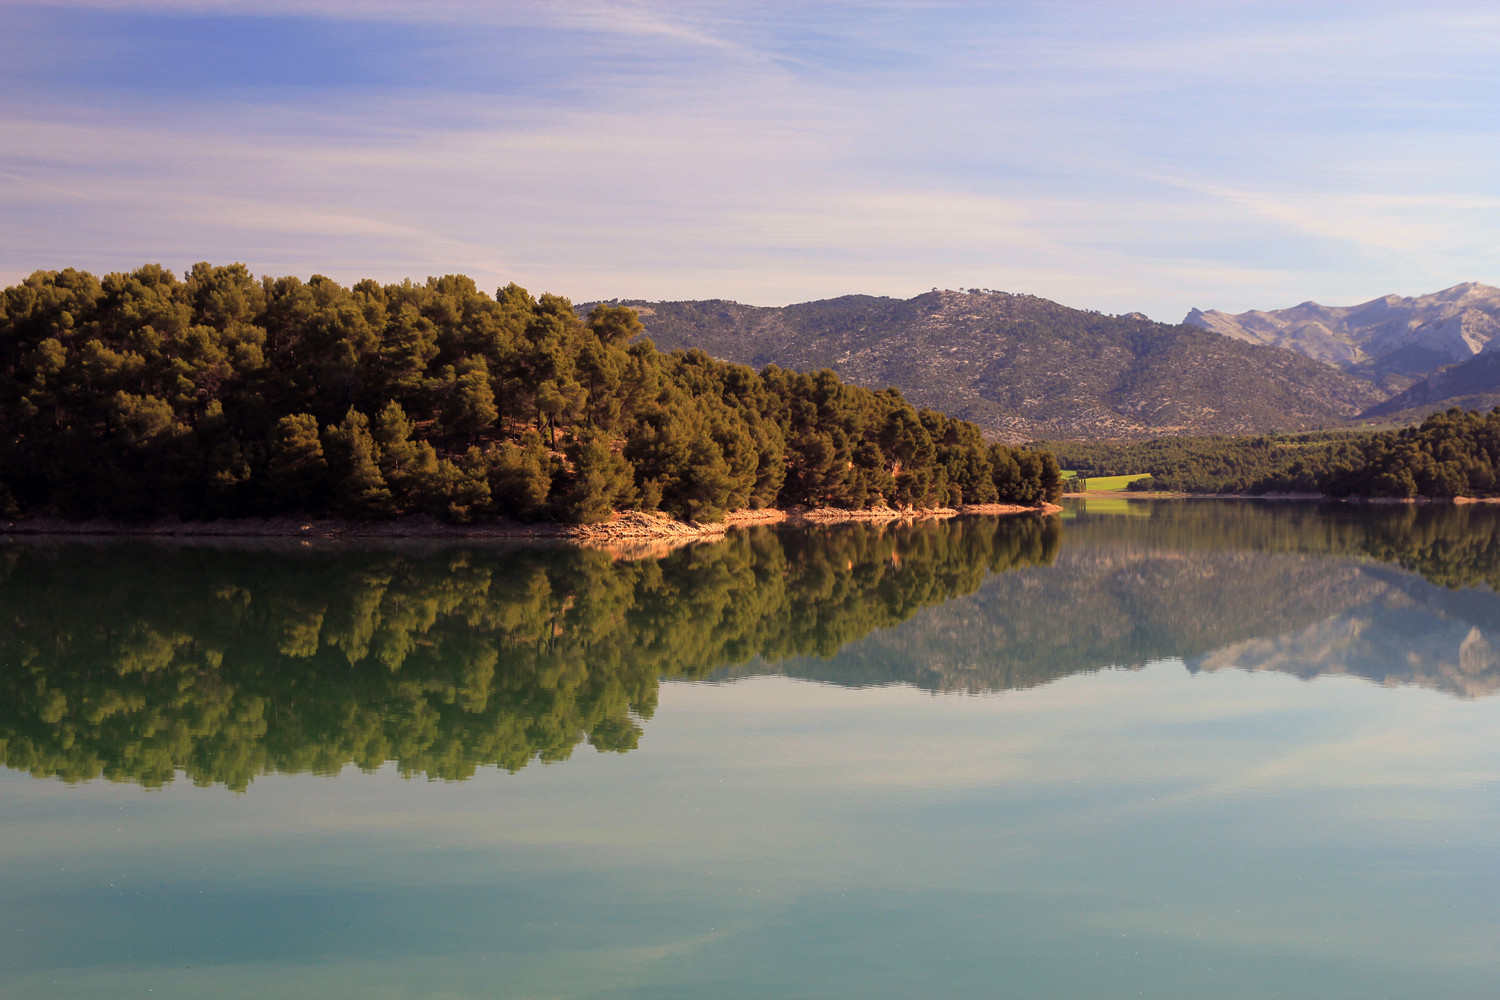 """Sierra Cazola Reflection"" - Embalse de Bolera, Jaen - L08896"